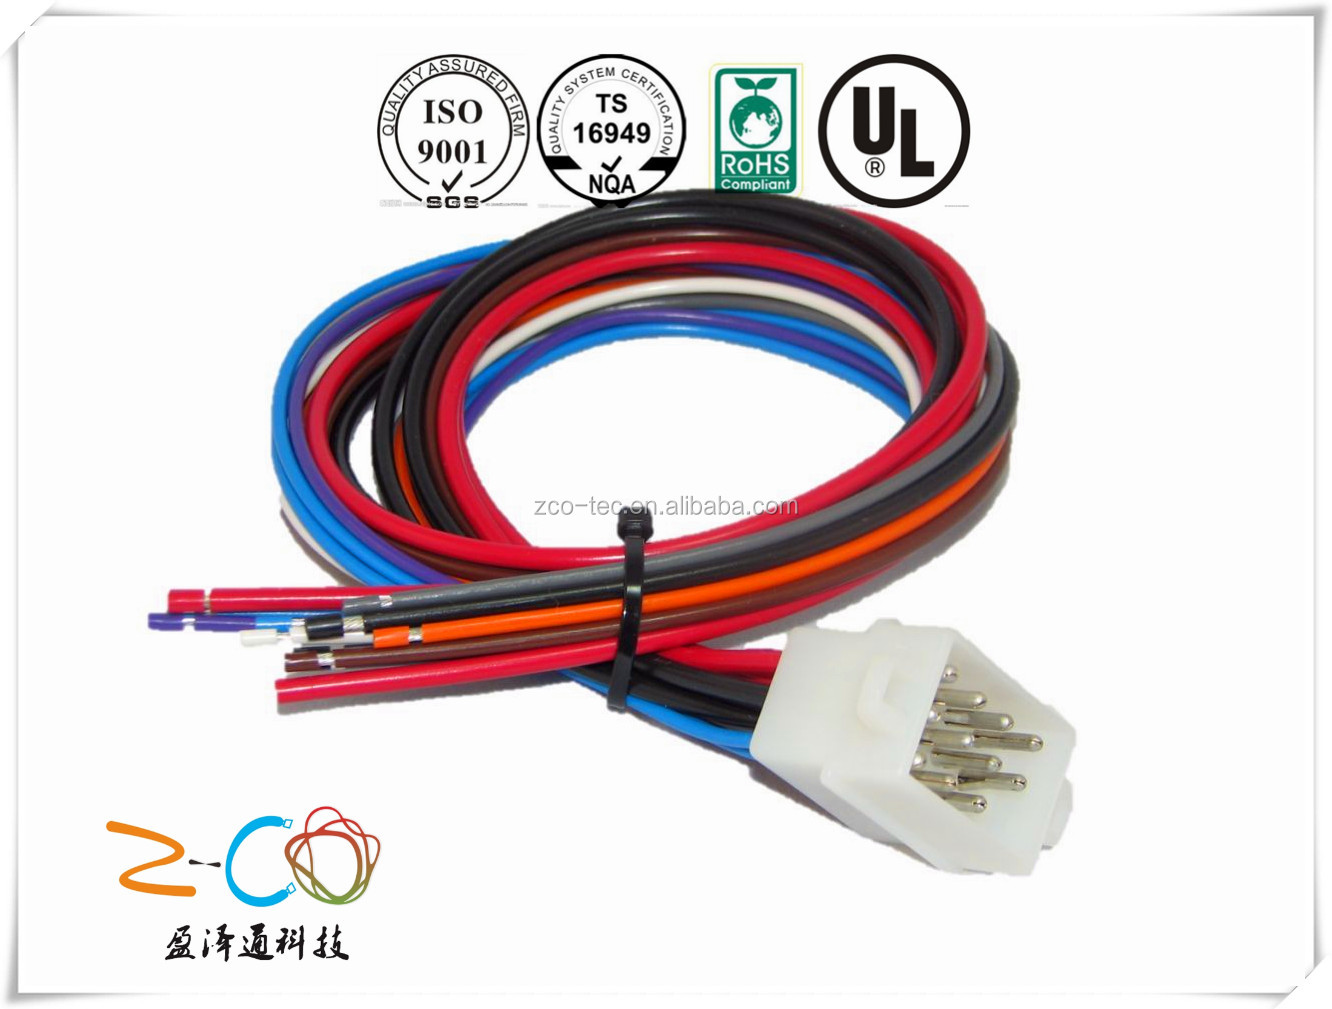 Wire Harness Wrapping Tape With Jst - Buy Wire Harness Wrapping Tape,Game  Machine Wire Harness,Wire Harness Wrapping Tape With Jst Product on  Alibaba.com